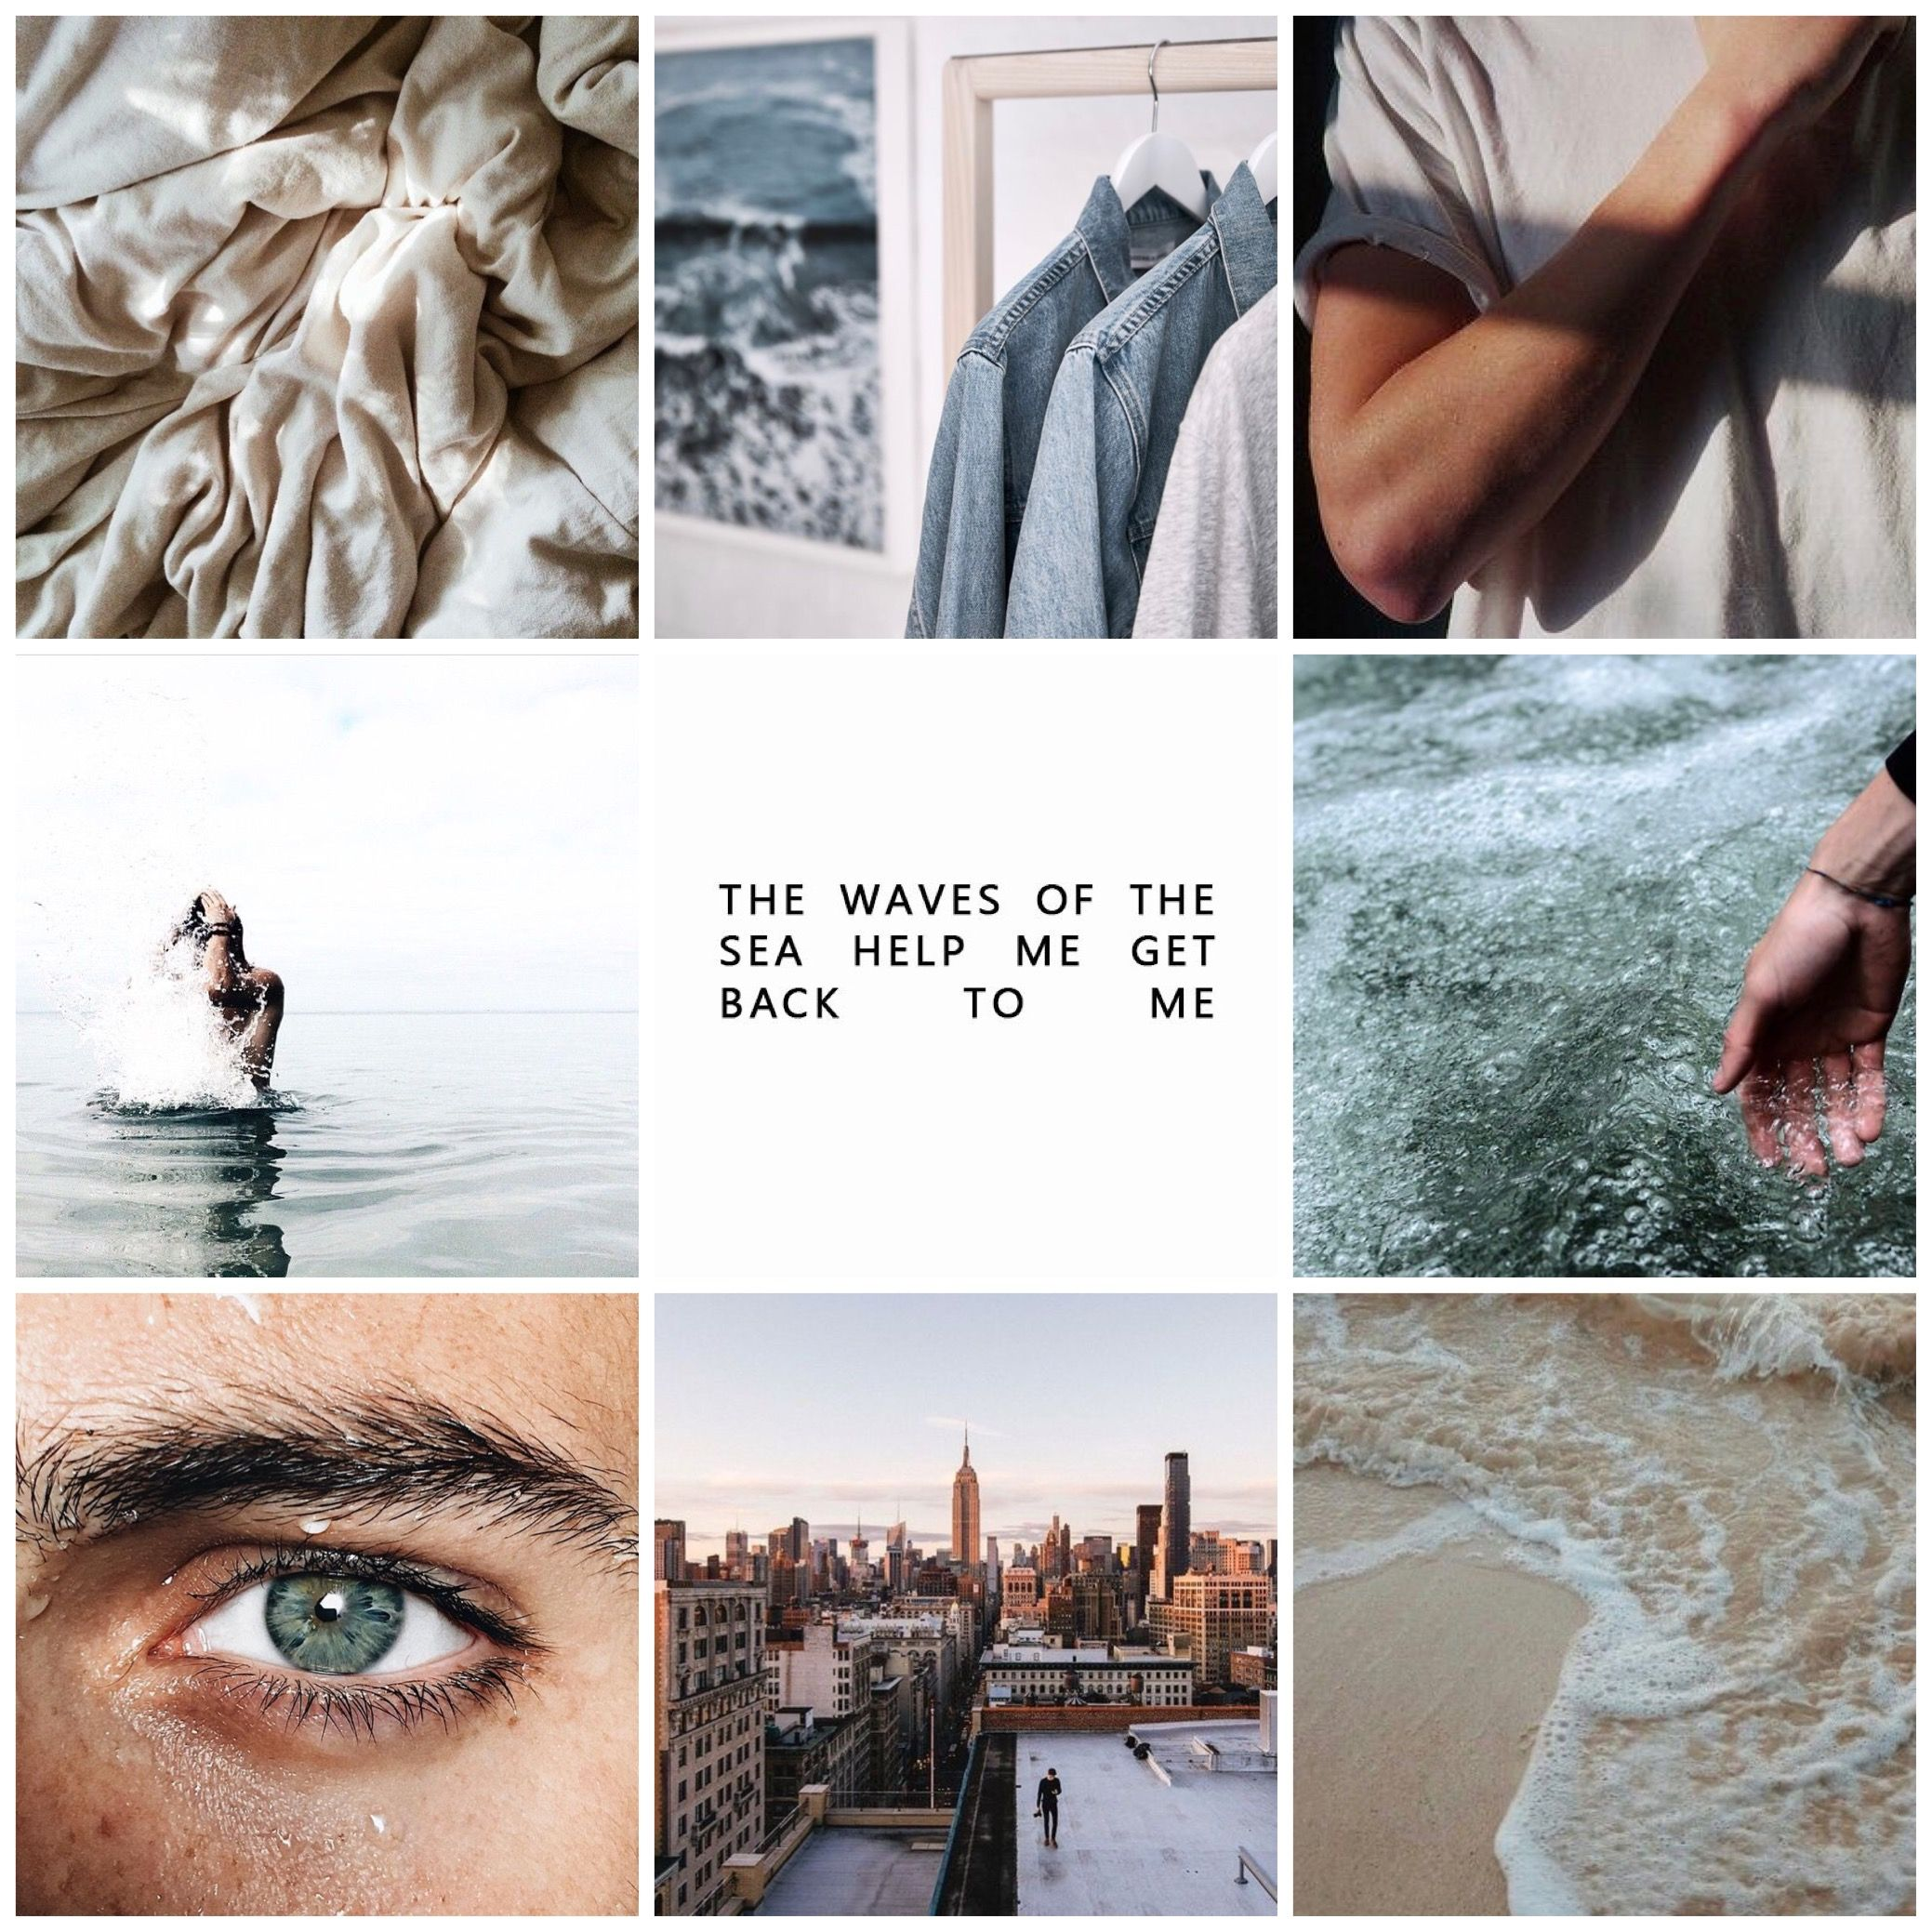 Percy Jackson aesthetic/mood board | percy jackson in 2019 | Percy